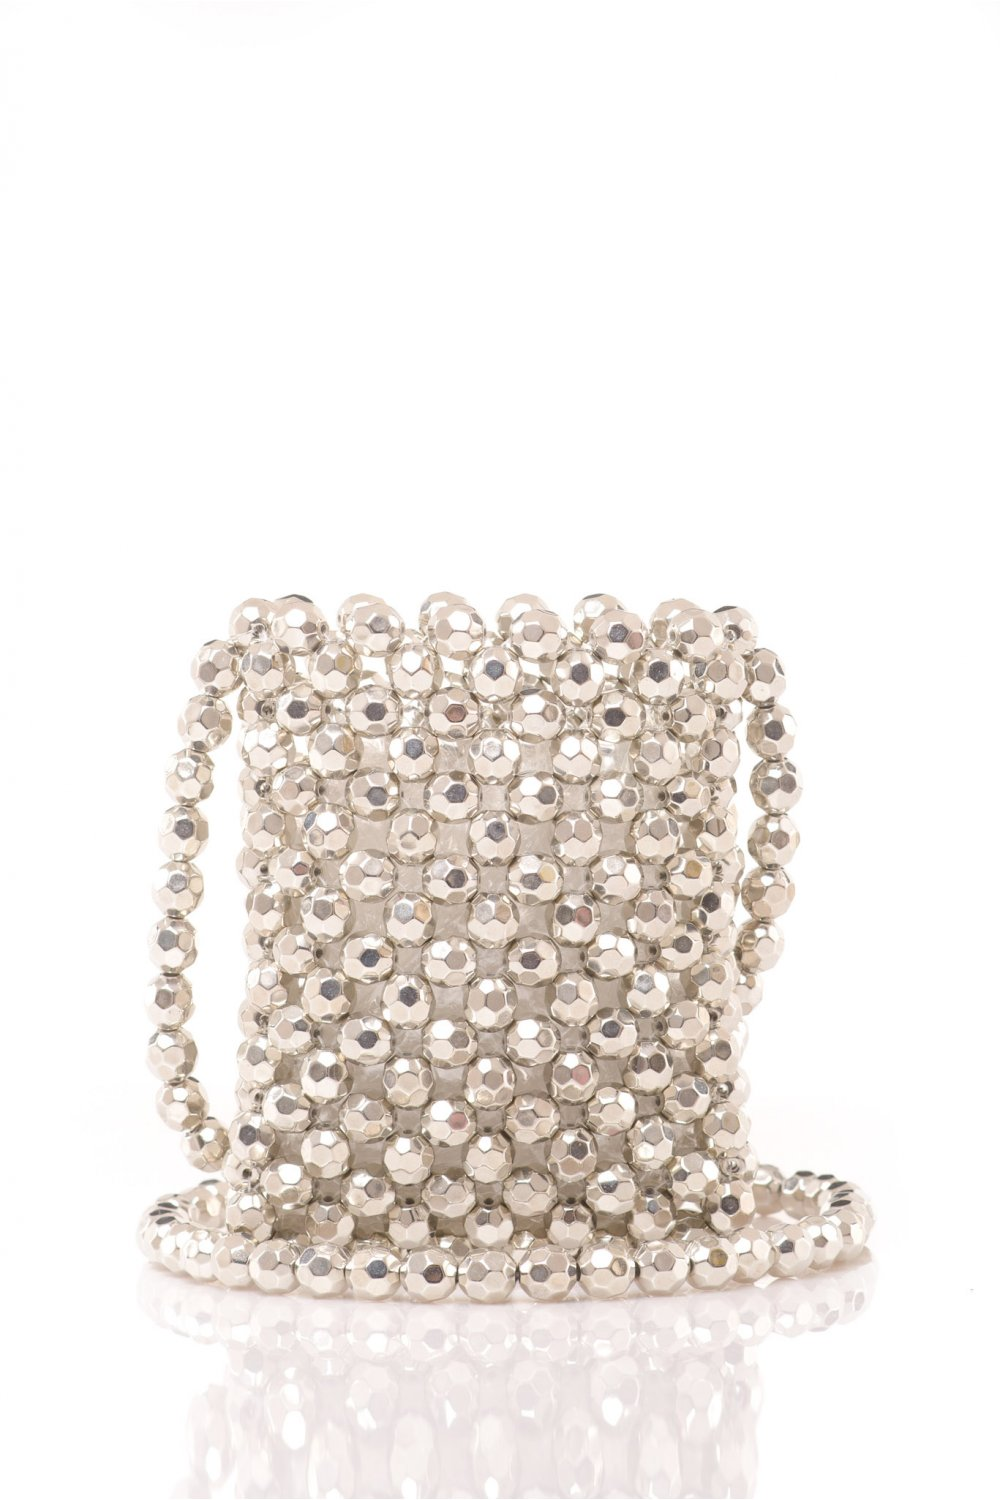 HANDMADE BAG WITH SILVER PEARLS